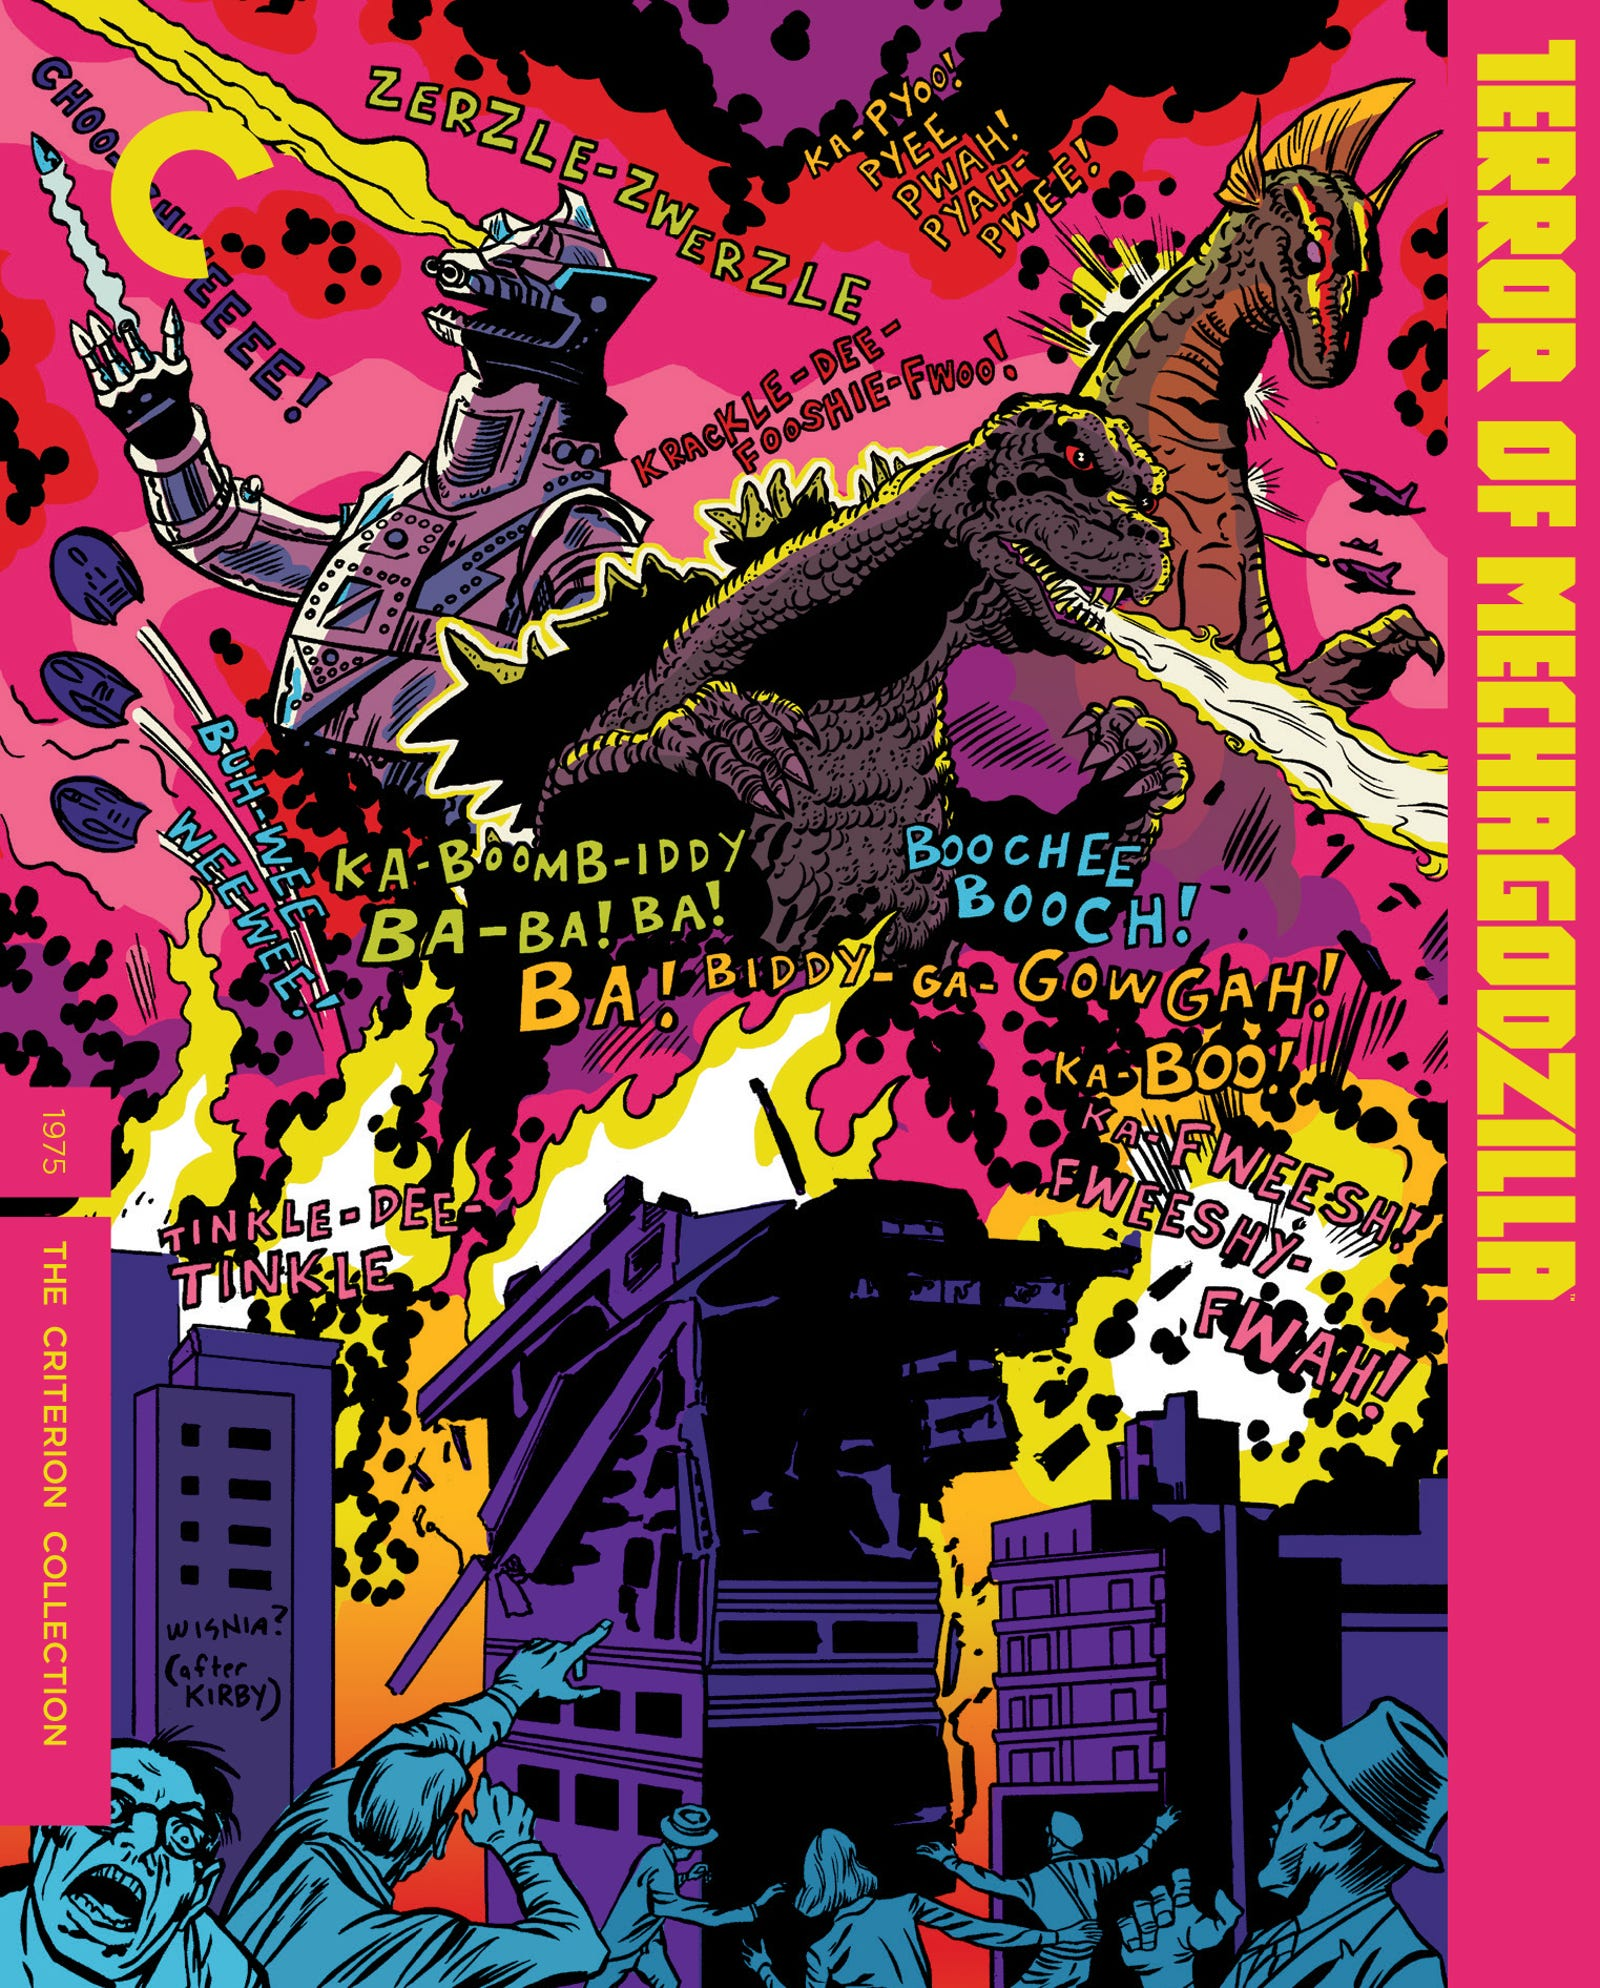 Terror of Mechagodzilla Criterion cover